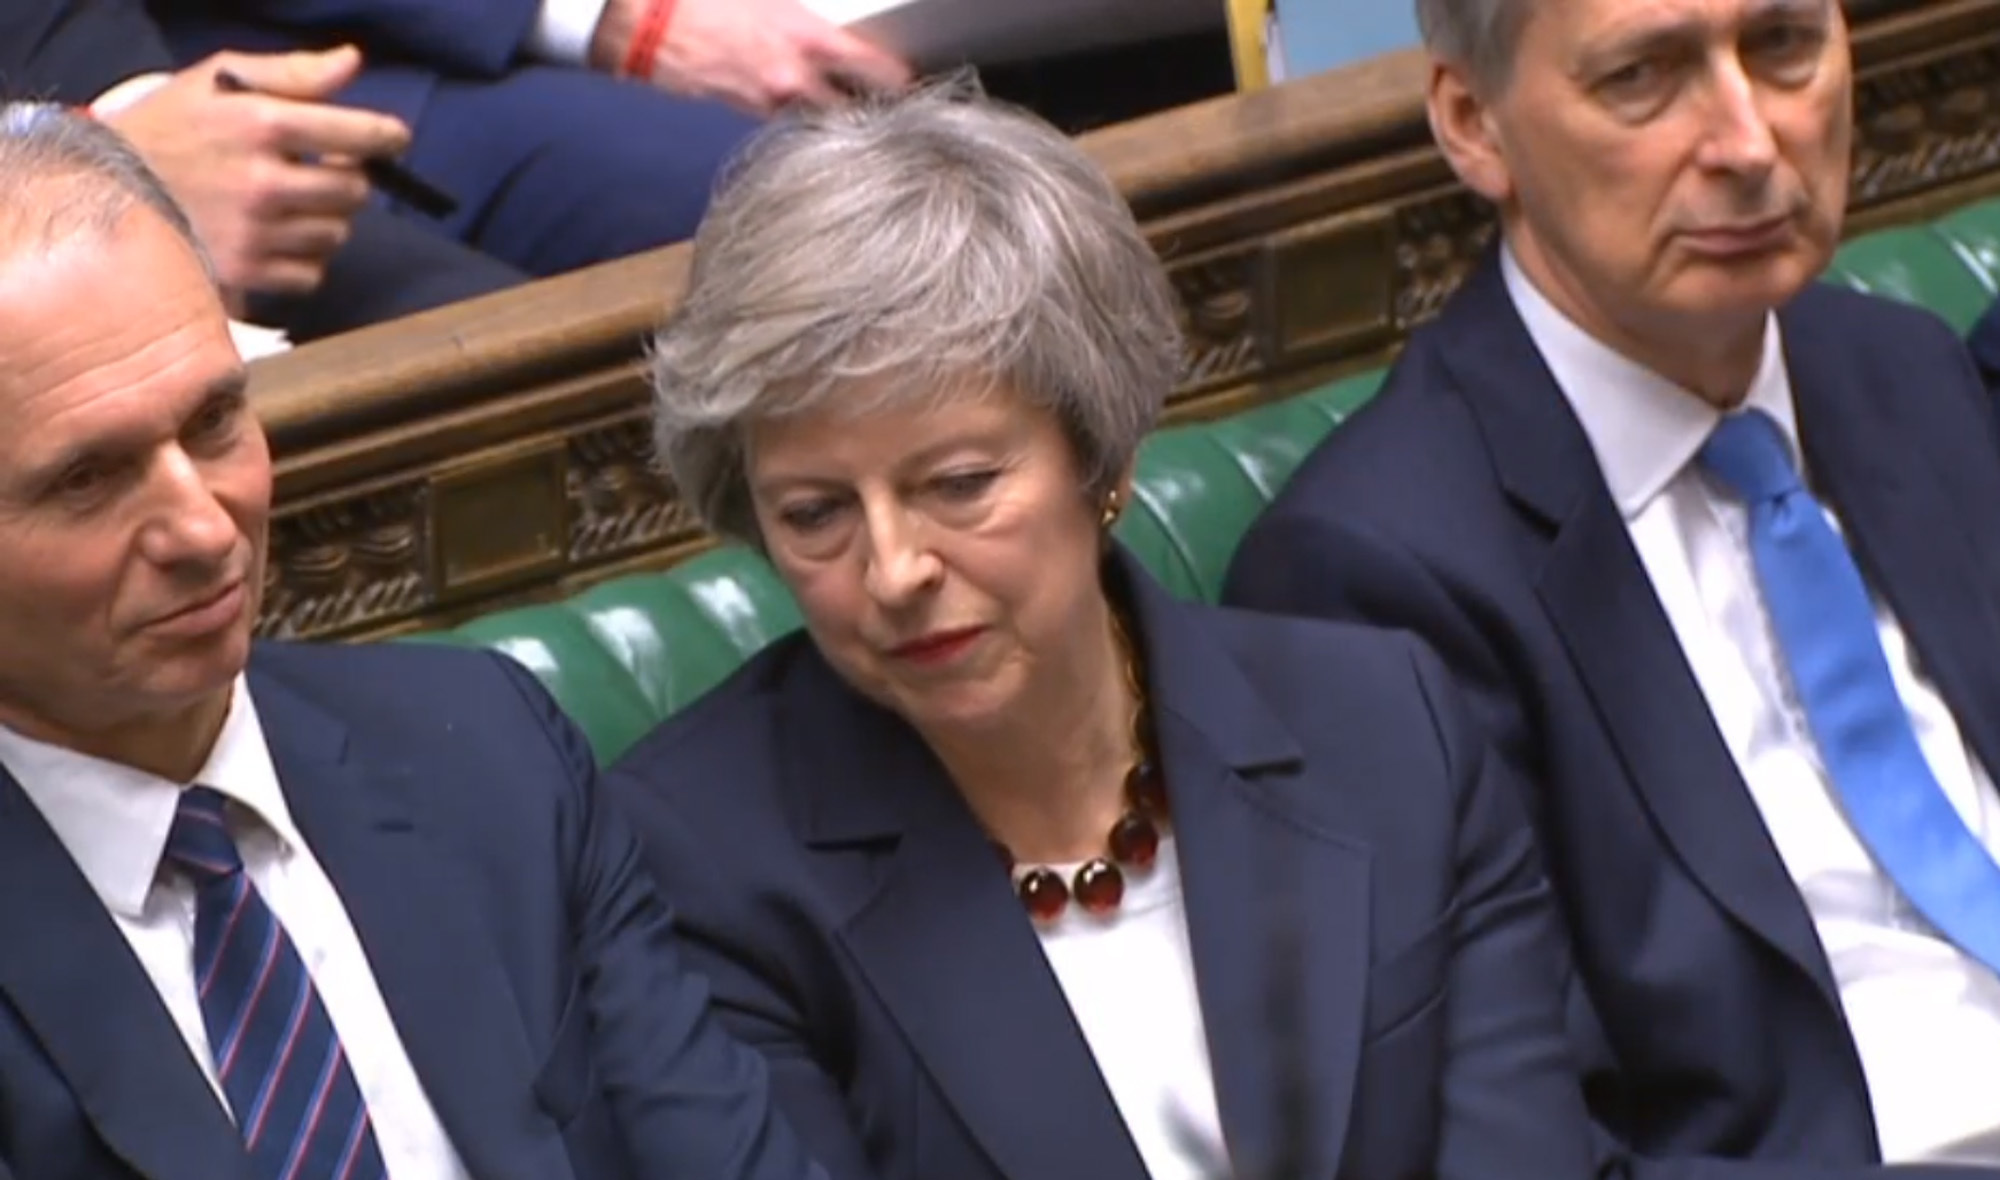 Prime Minister Theresa May listens during Prime Minister's Questions in the House of Commons, London. PRESS ASSOCIATION Photo. Picture date: Wednesday January 9, 2019. See PA story POLITICS PMQs May. Photo credit should read: House of Commons/PA Wire.